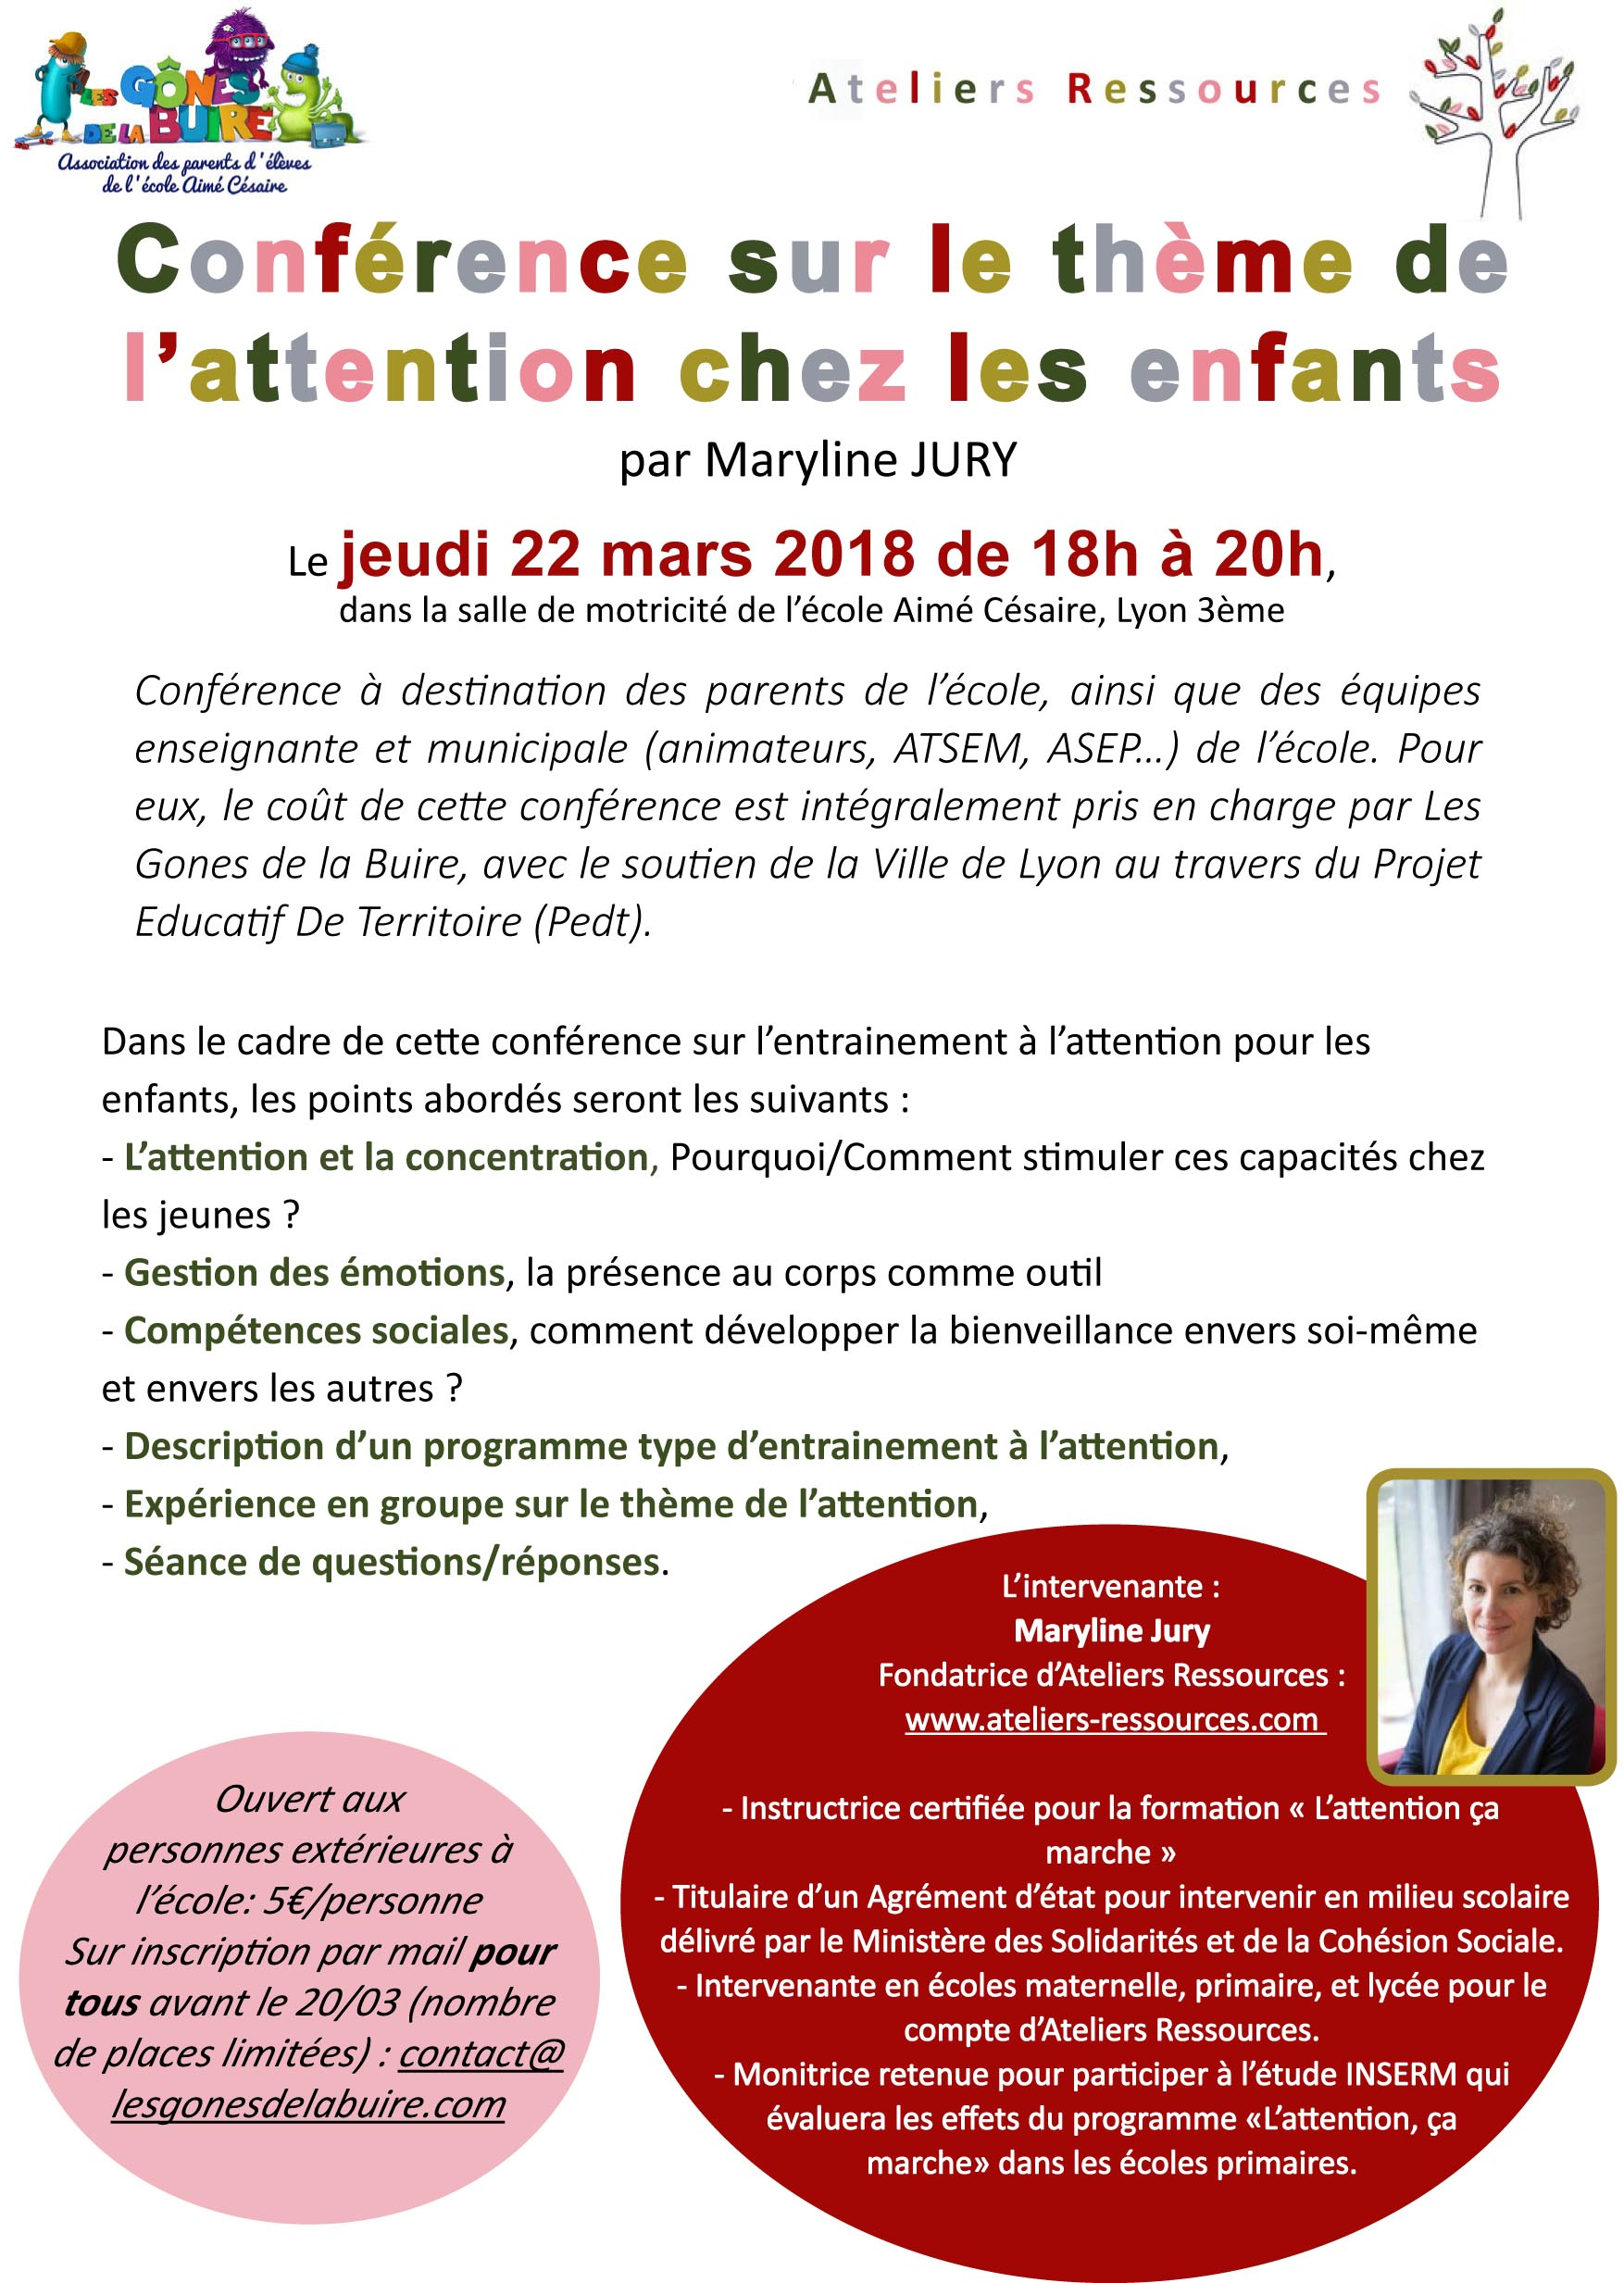 formation l'attention ca marche